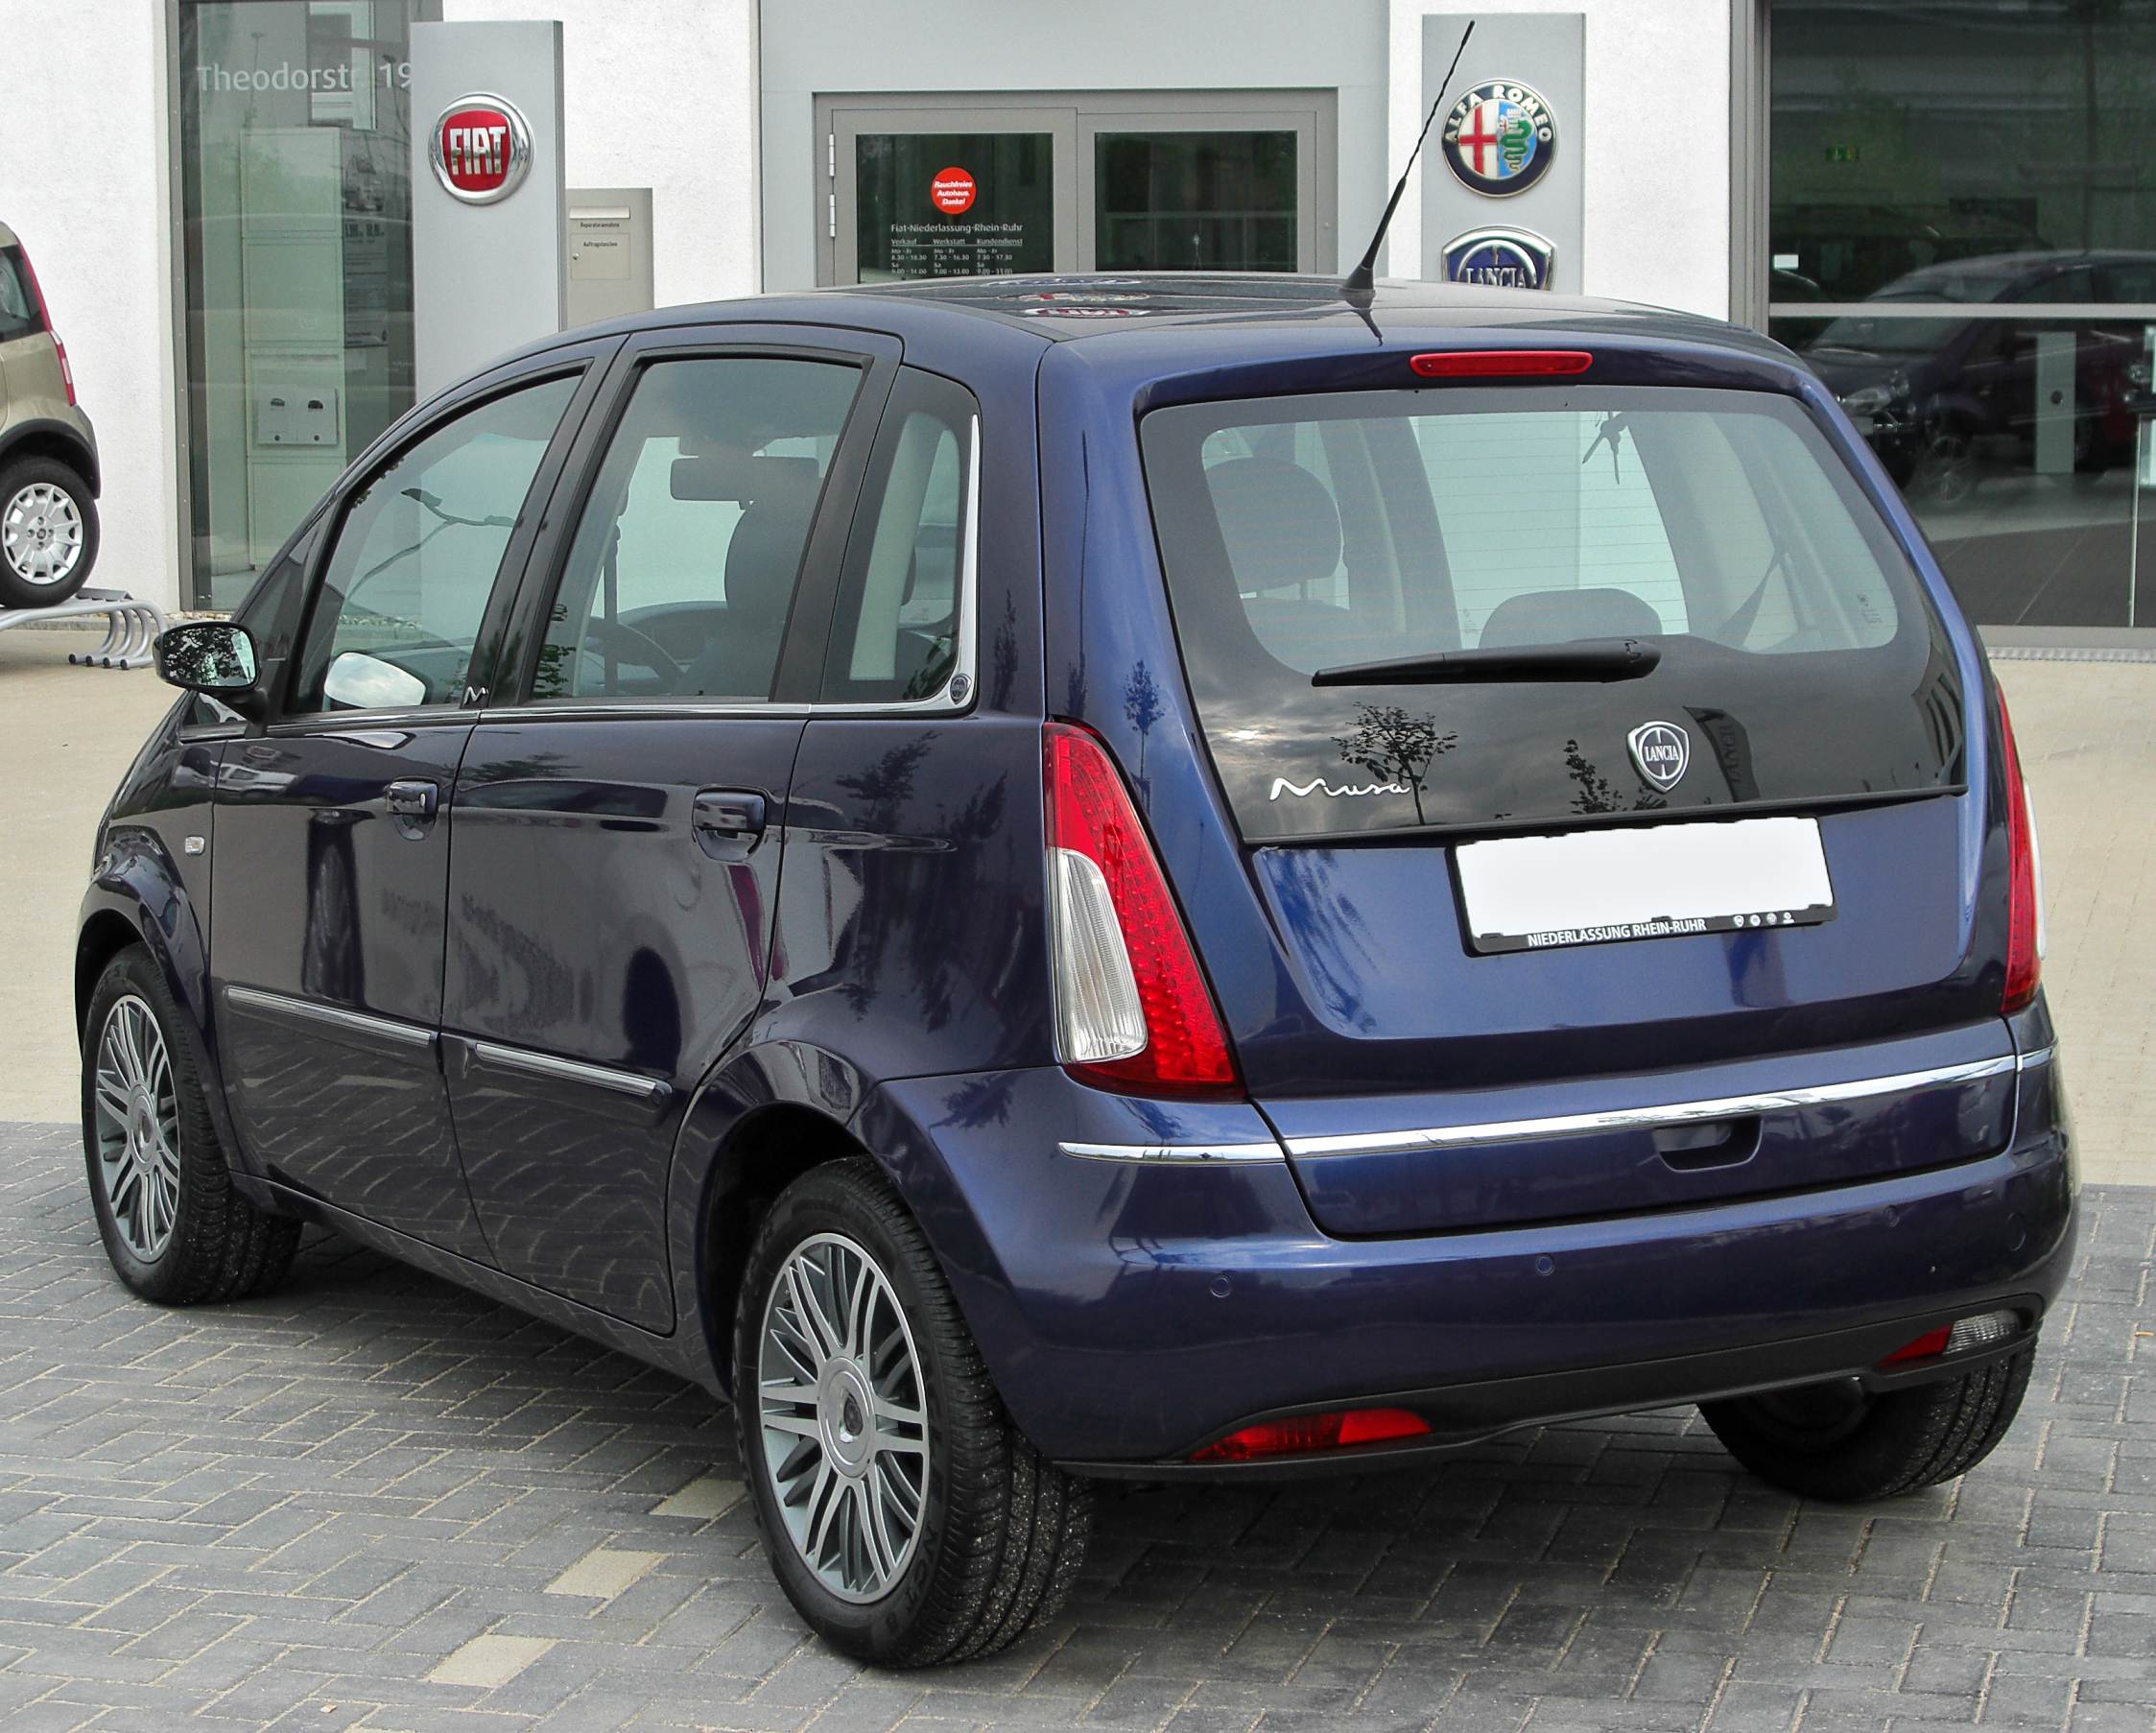 file lancia musa facelift rear wikimedia commons. Black Bedroom Furniture Sets. Home Design Ideas